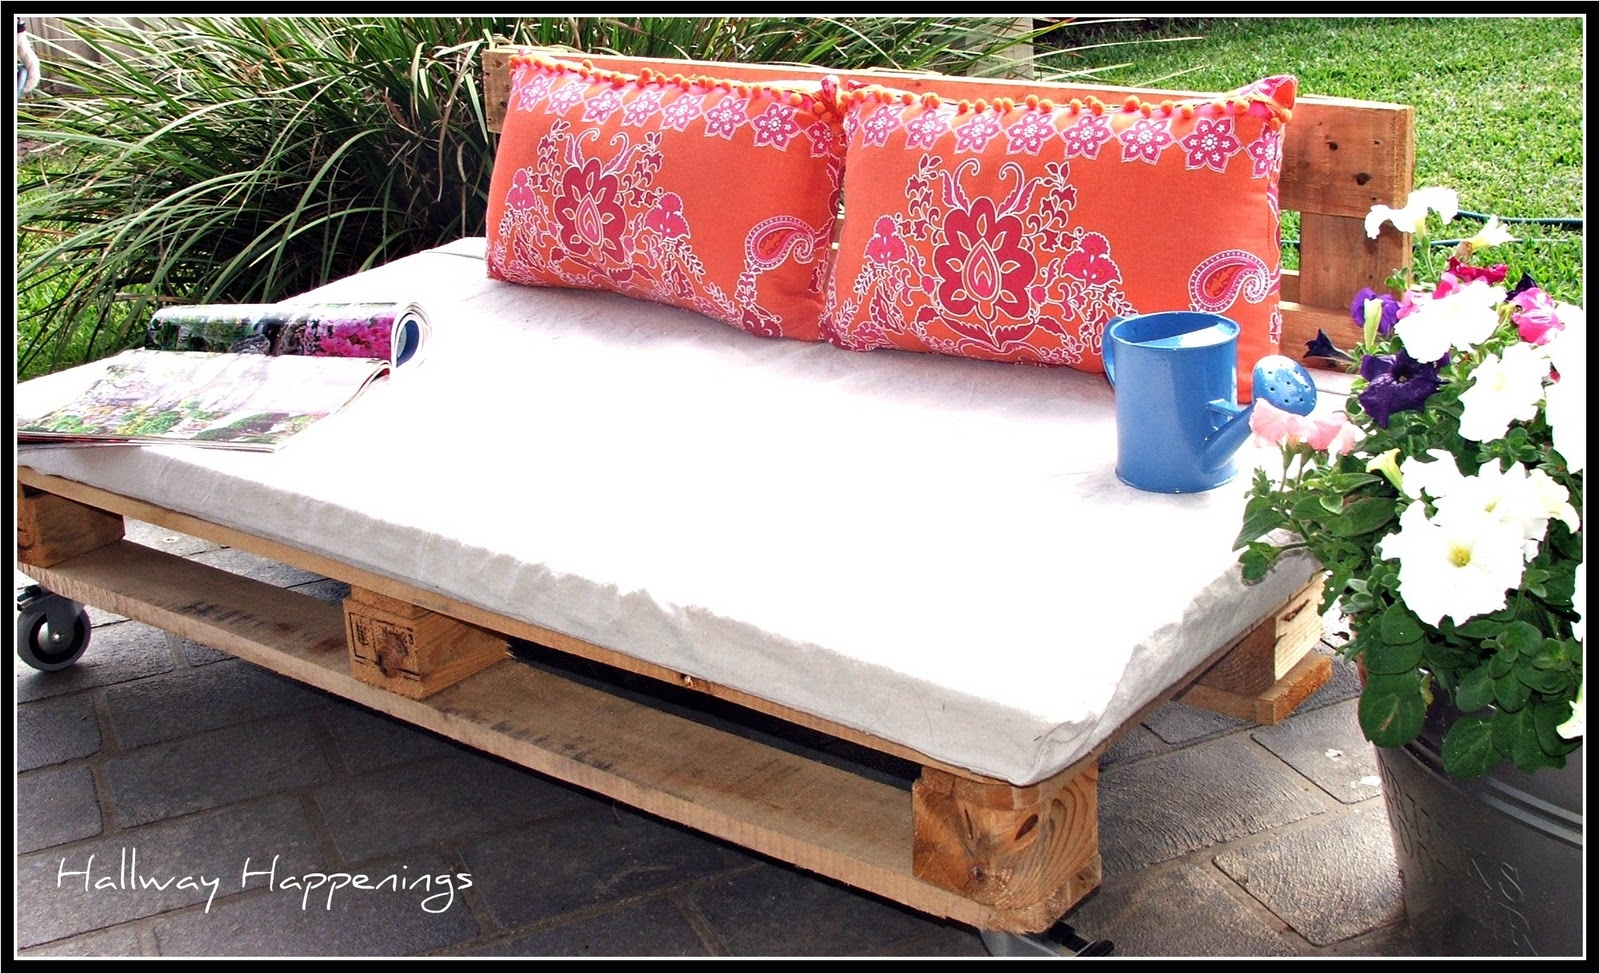 40 Diy Ideas Outdoor Furniture Made From Pallets 49 10 Diy Outdoor Furniture Made Of Pallet 9